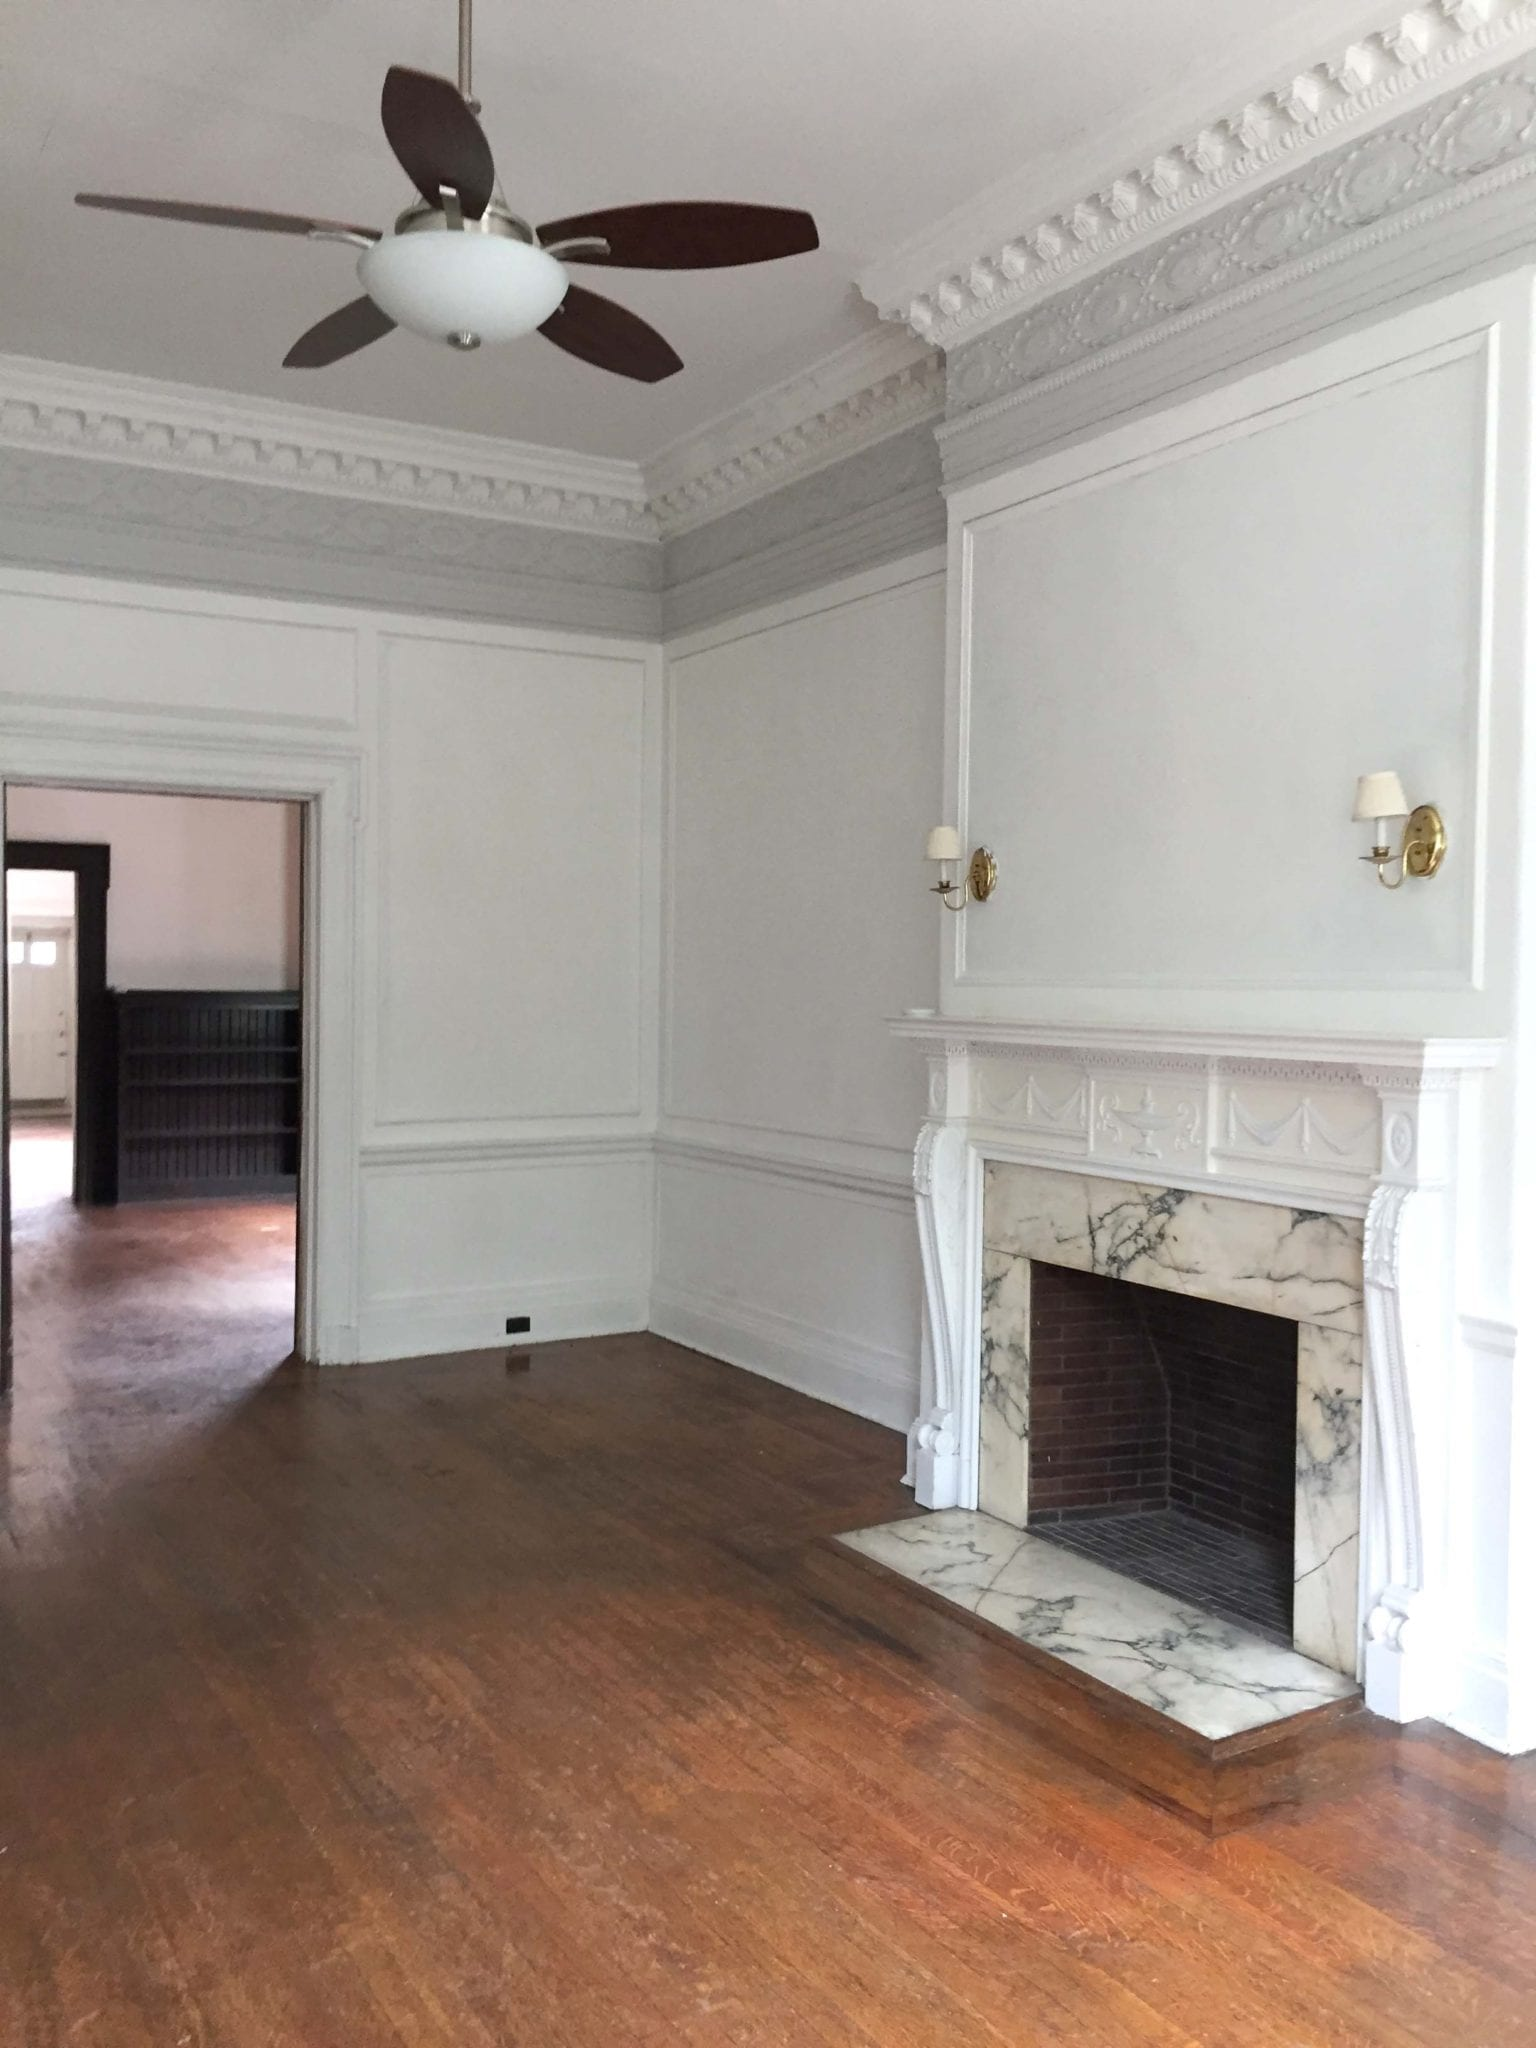 16 Middle Room